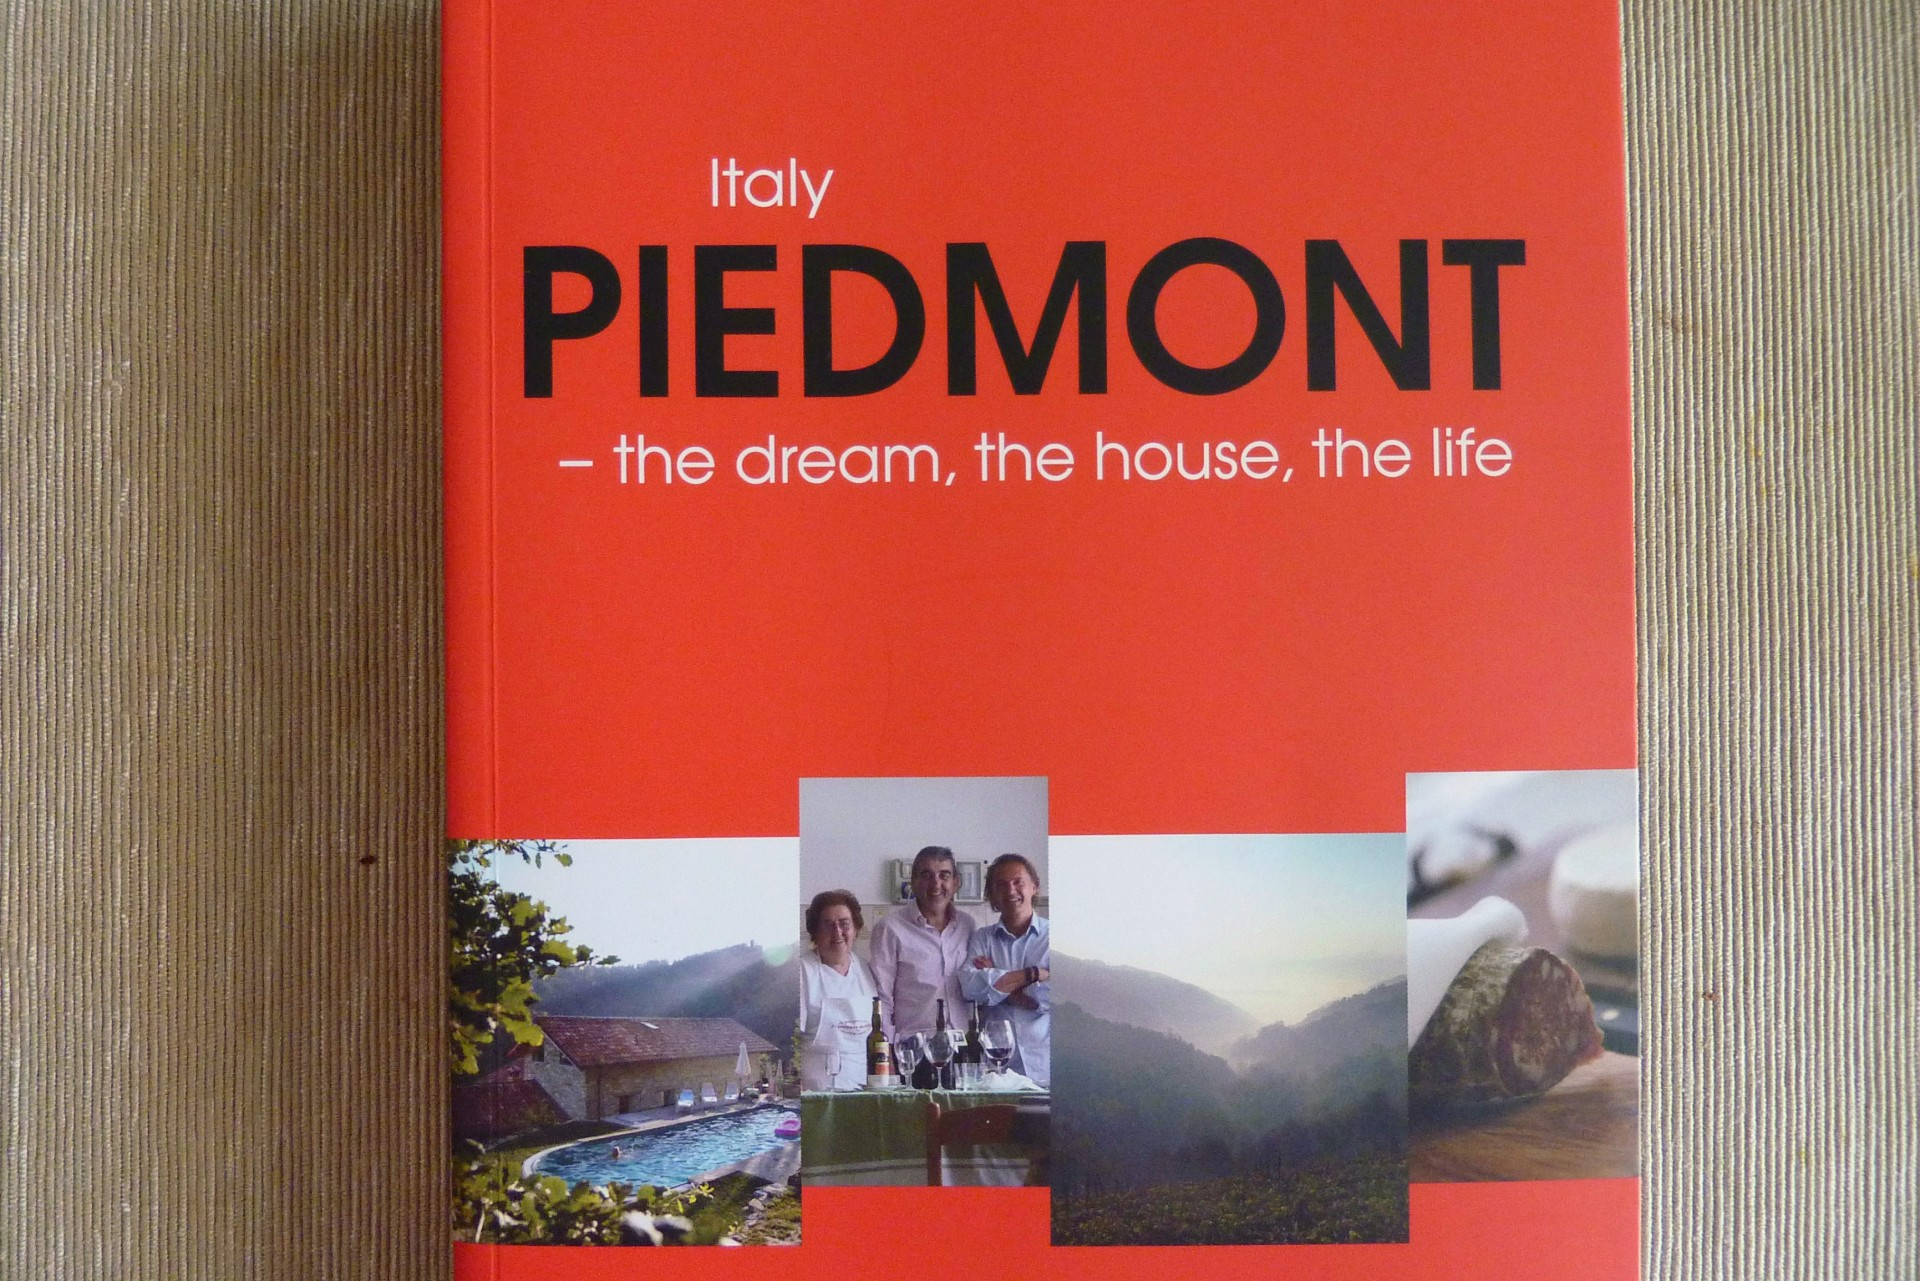 Piedmont - the dream, the house, the life